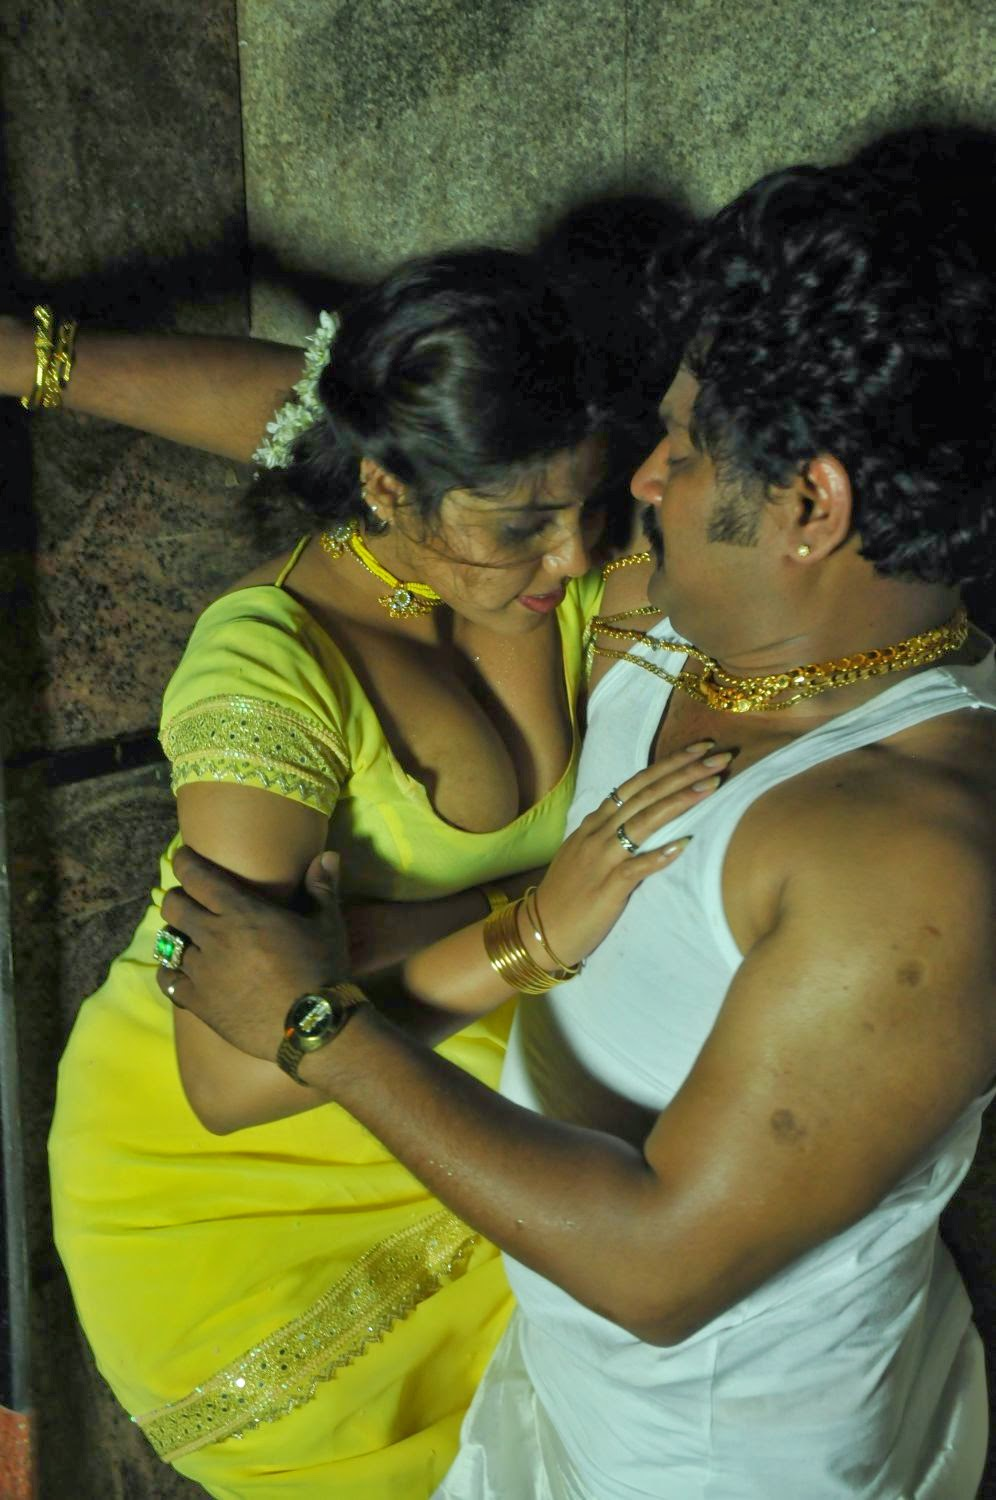 Indian free sexiporn 100% free download video  nackt gallery